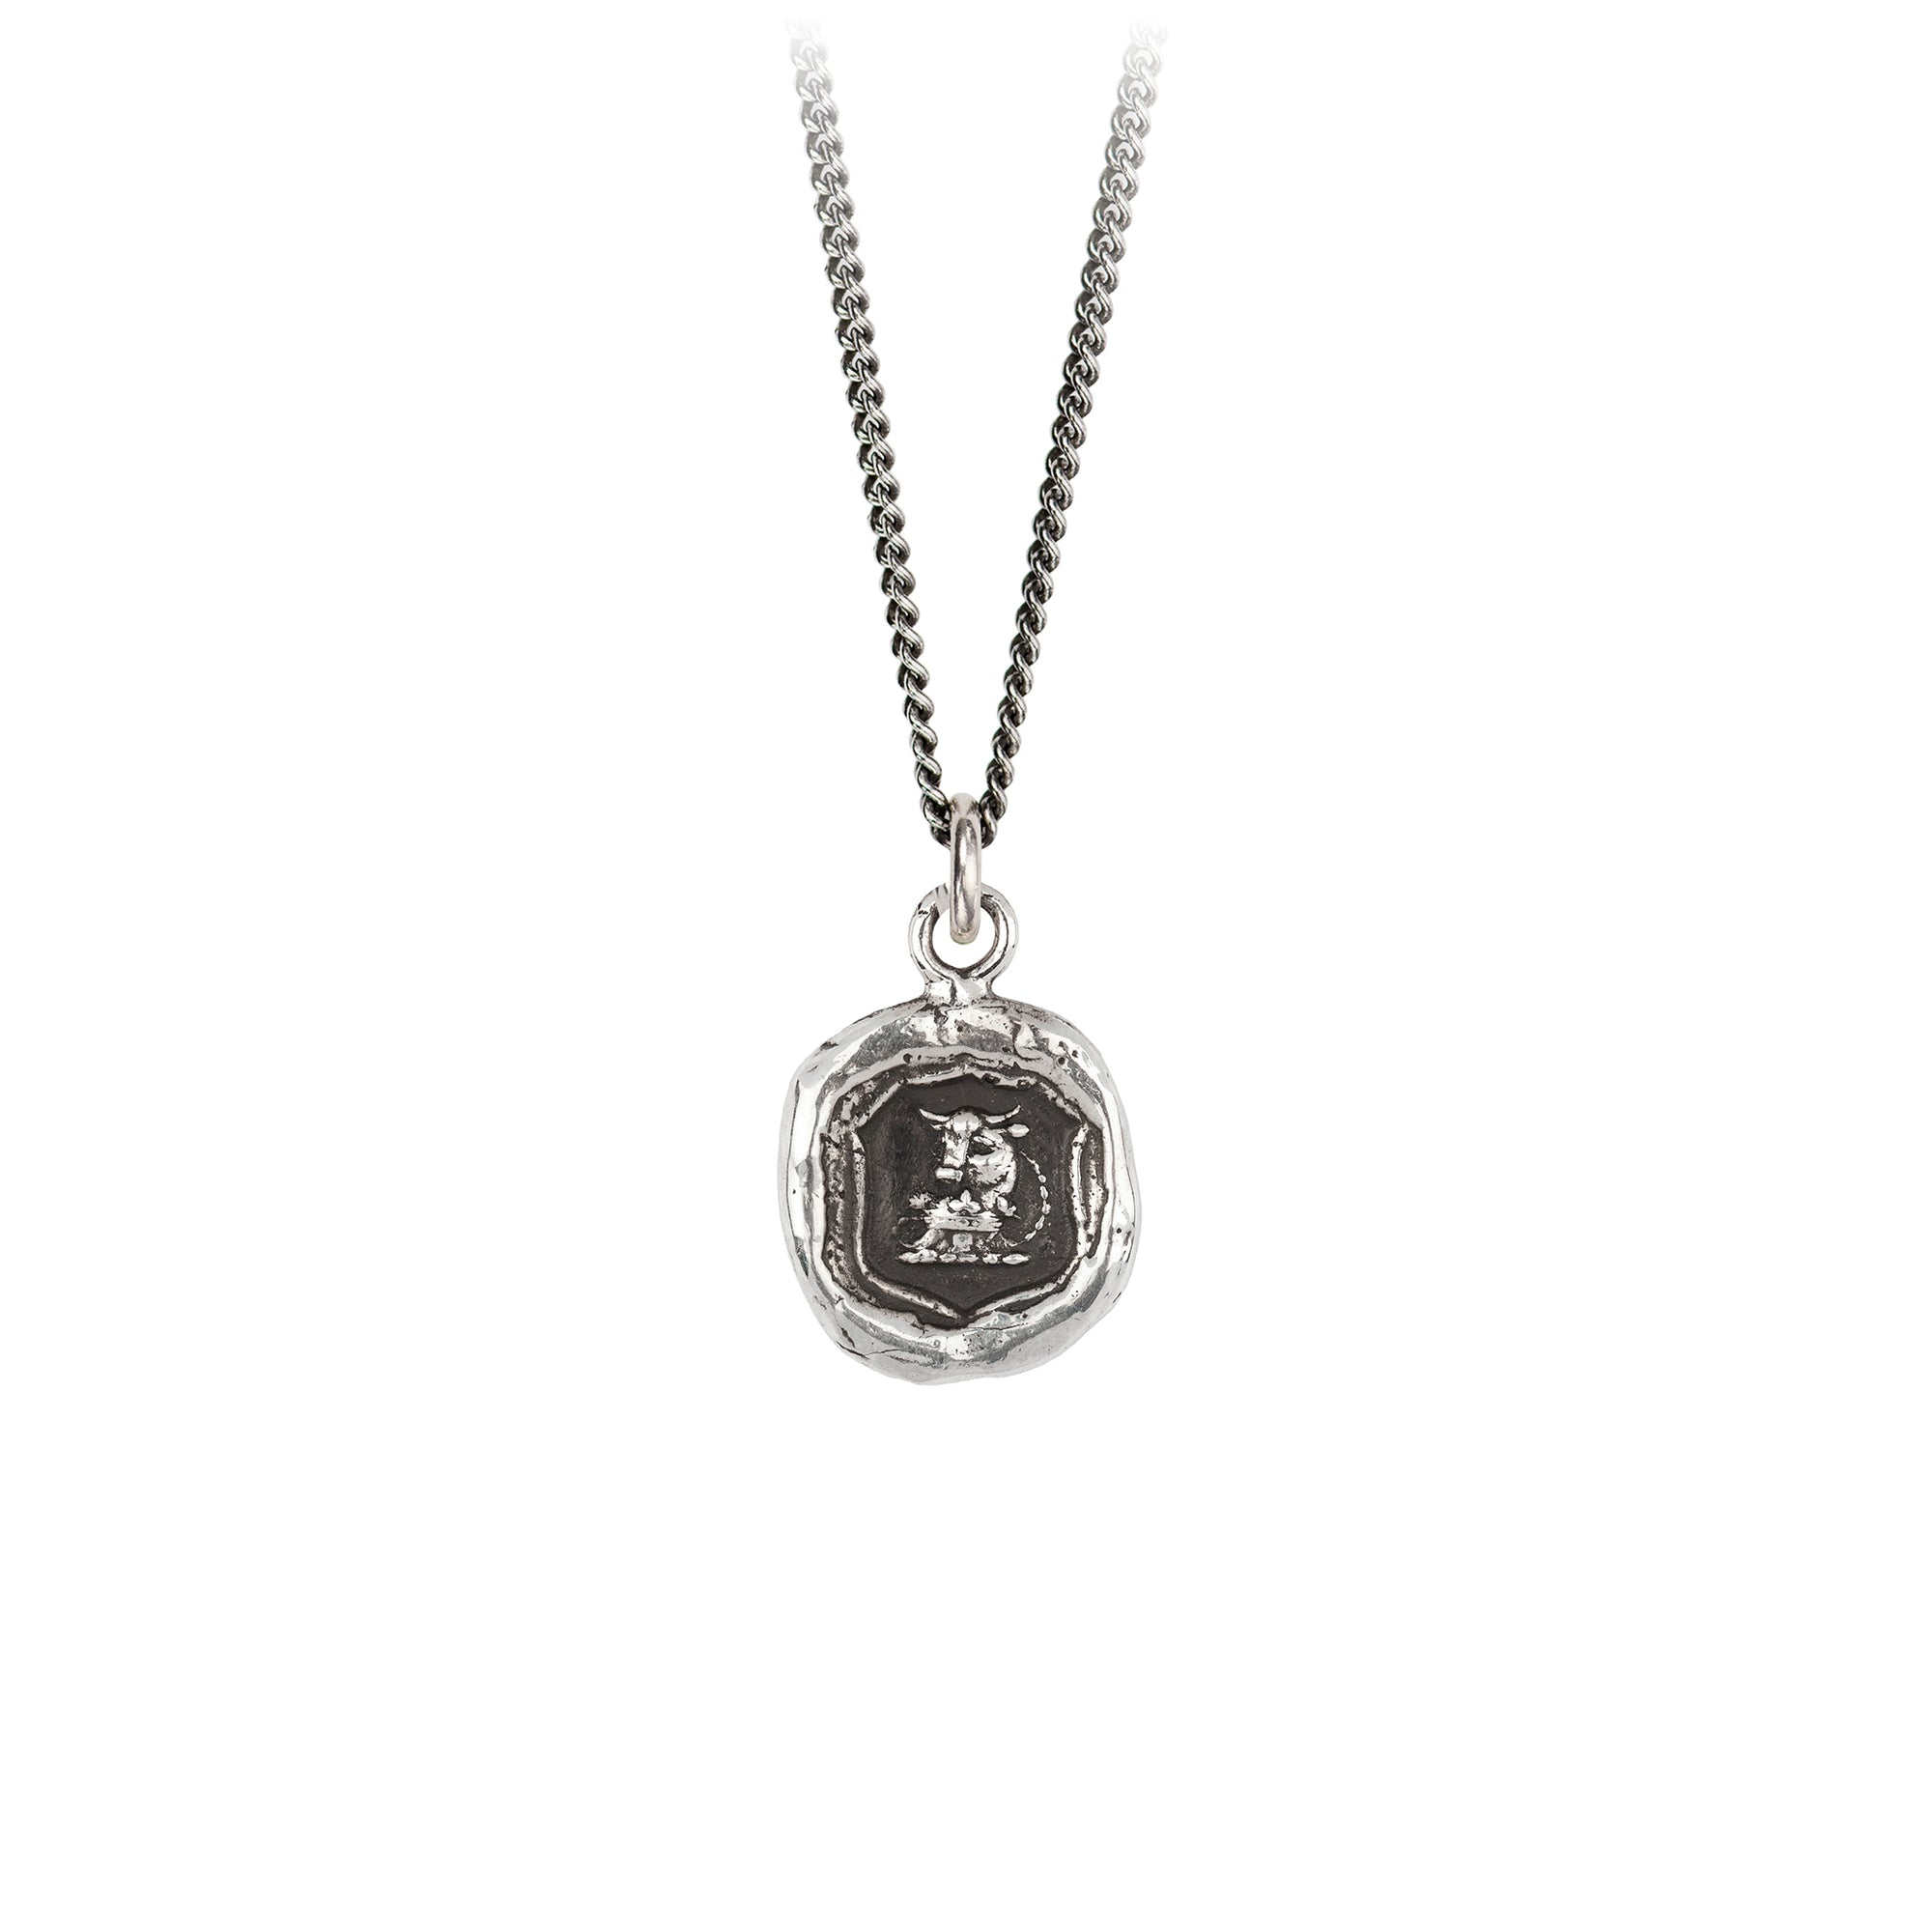 Pyrrha Fatherhood Talisman Necklace Silver